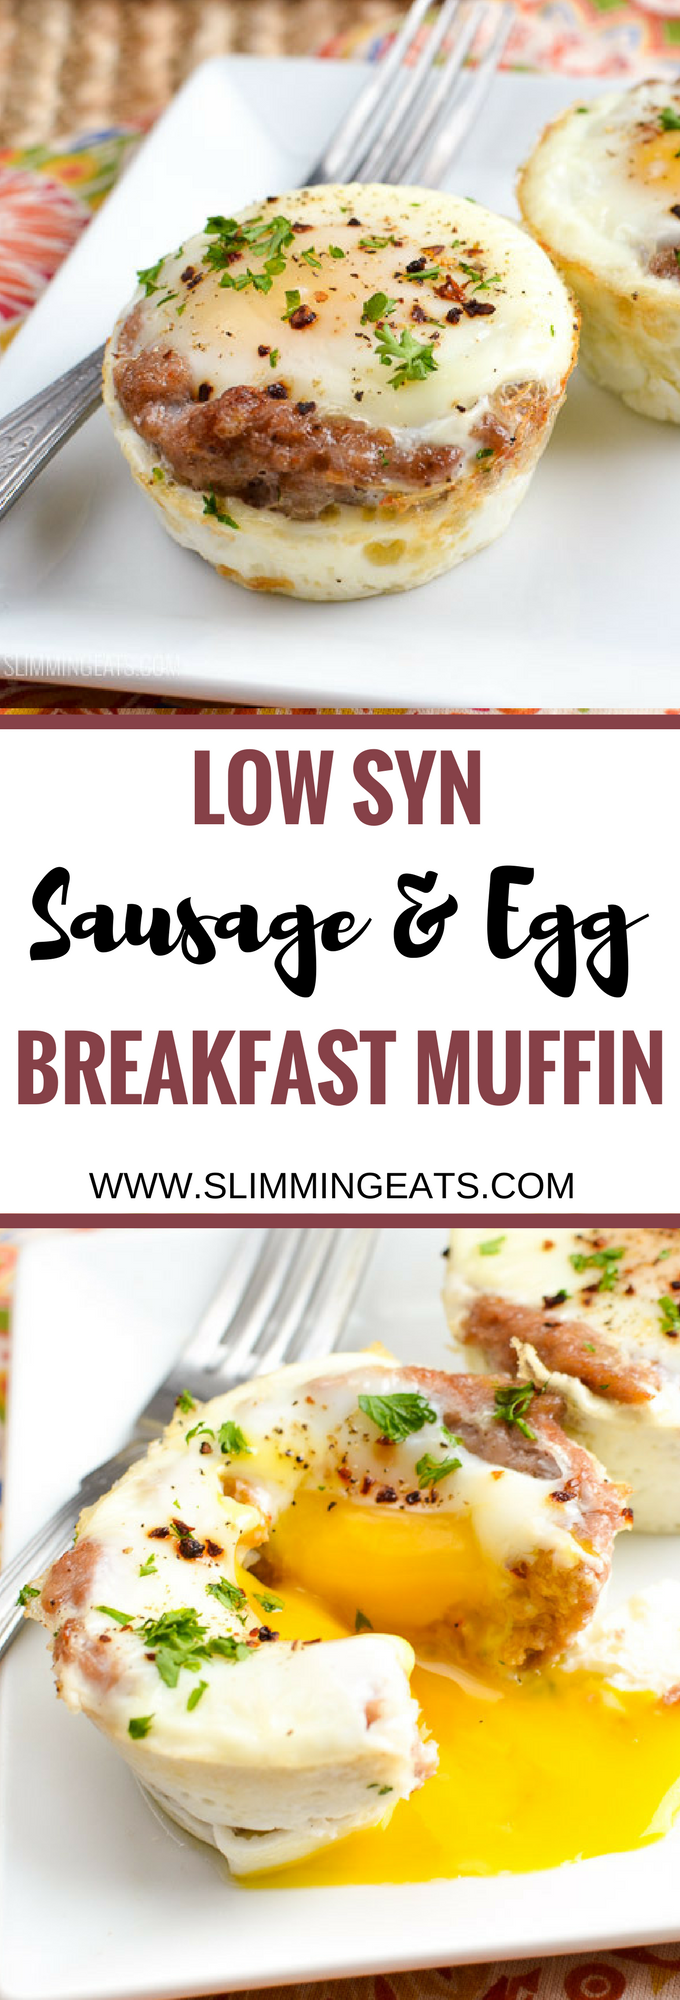 Slimming Eats - Low Syn Sausage and Egg Breakfast Muffins - gluten free, dairy free, paleo, Slimming World and Weight Watchers friendly